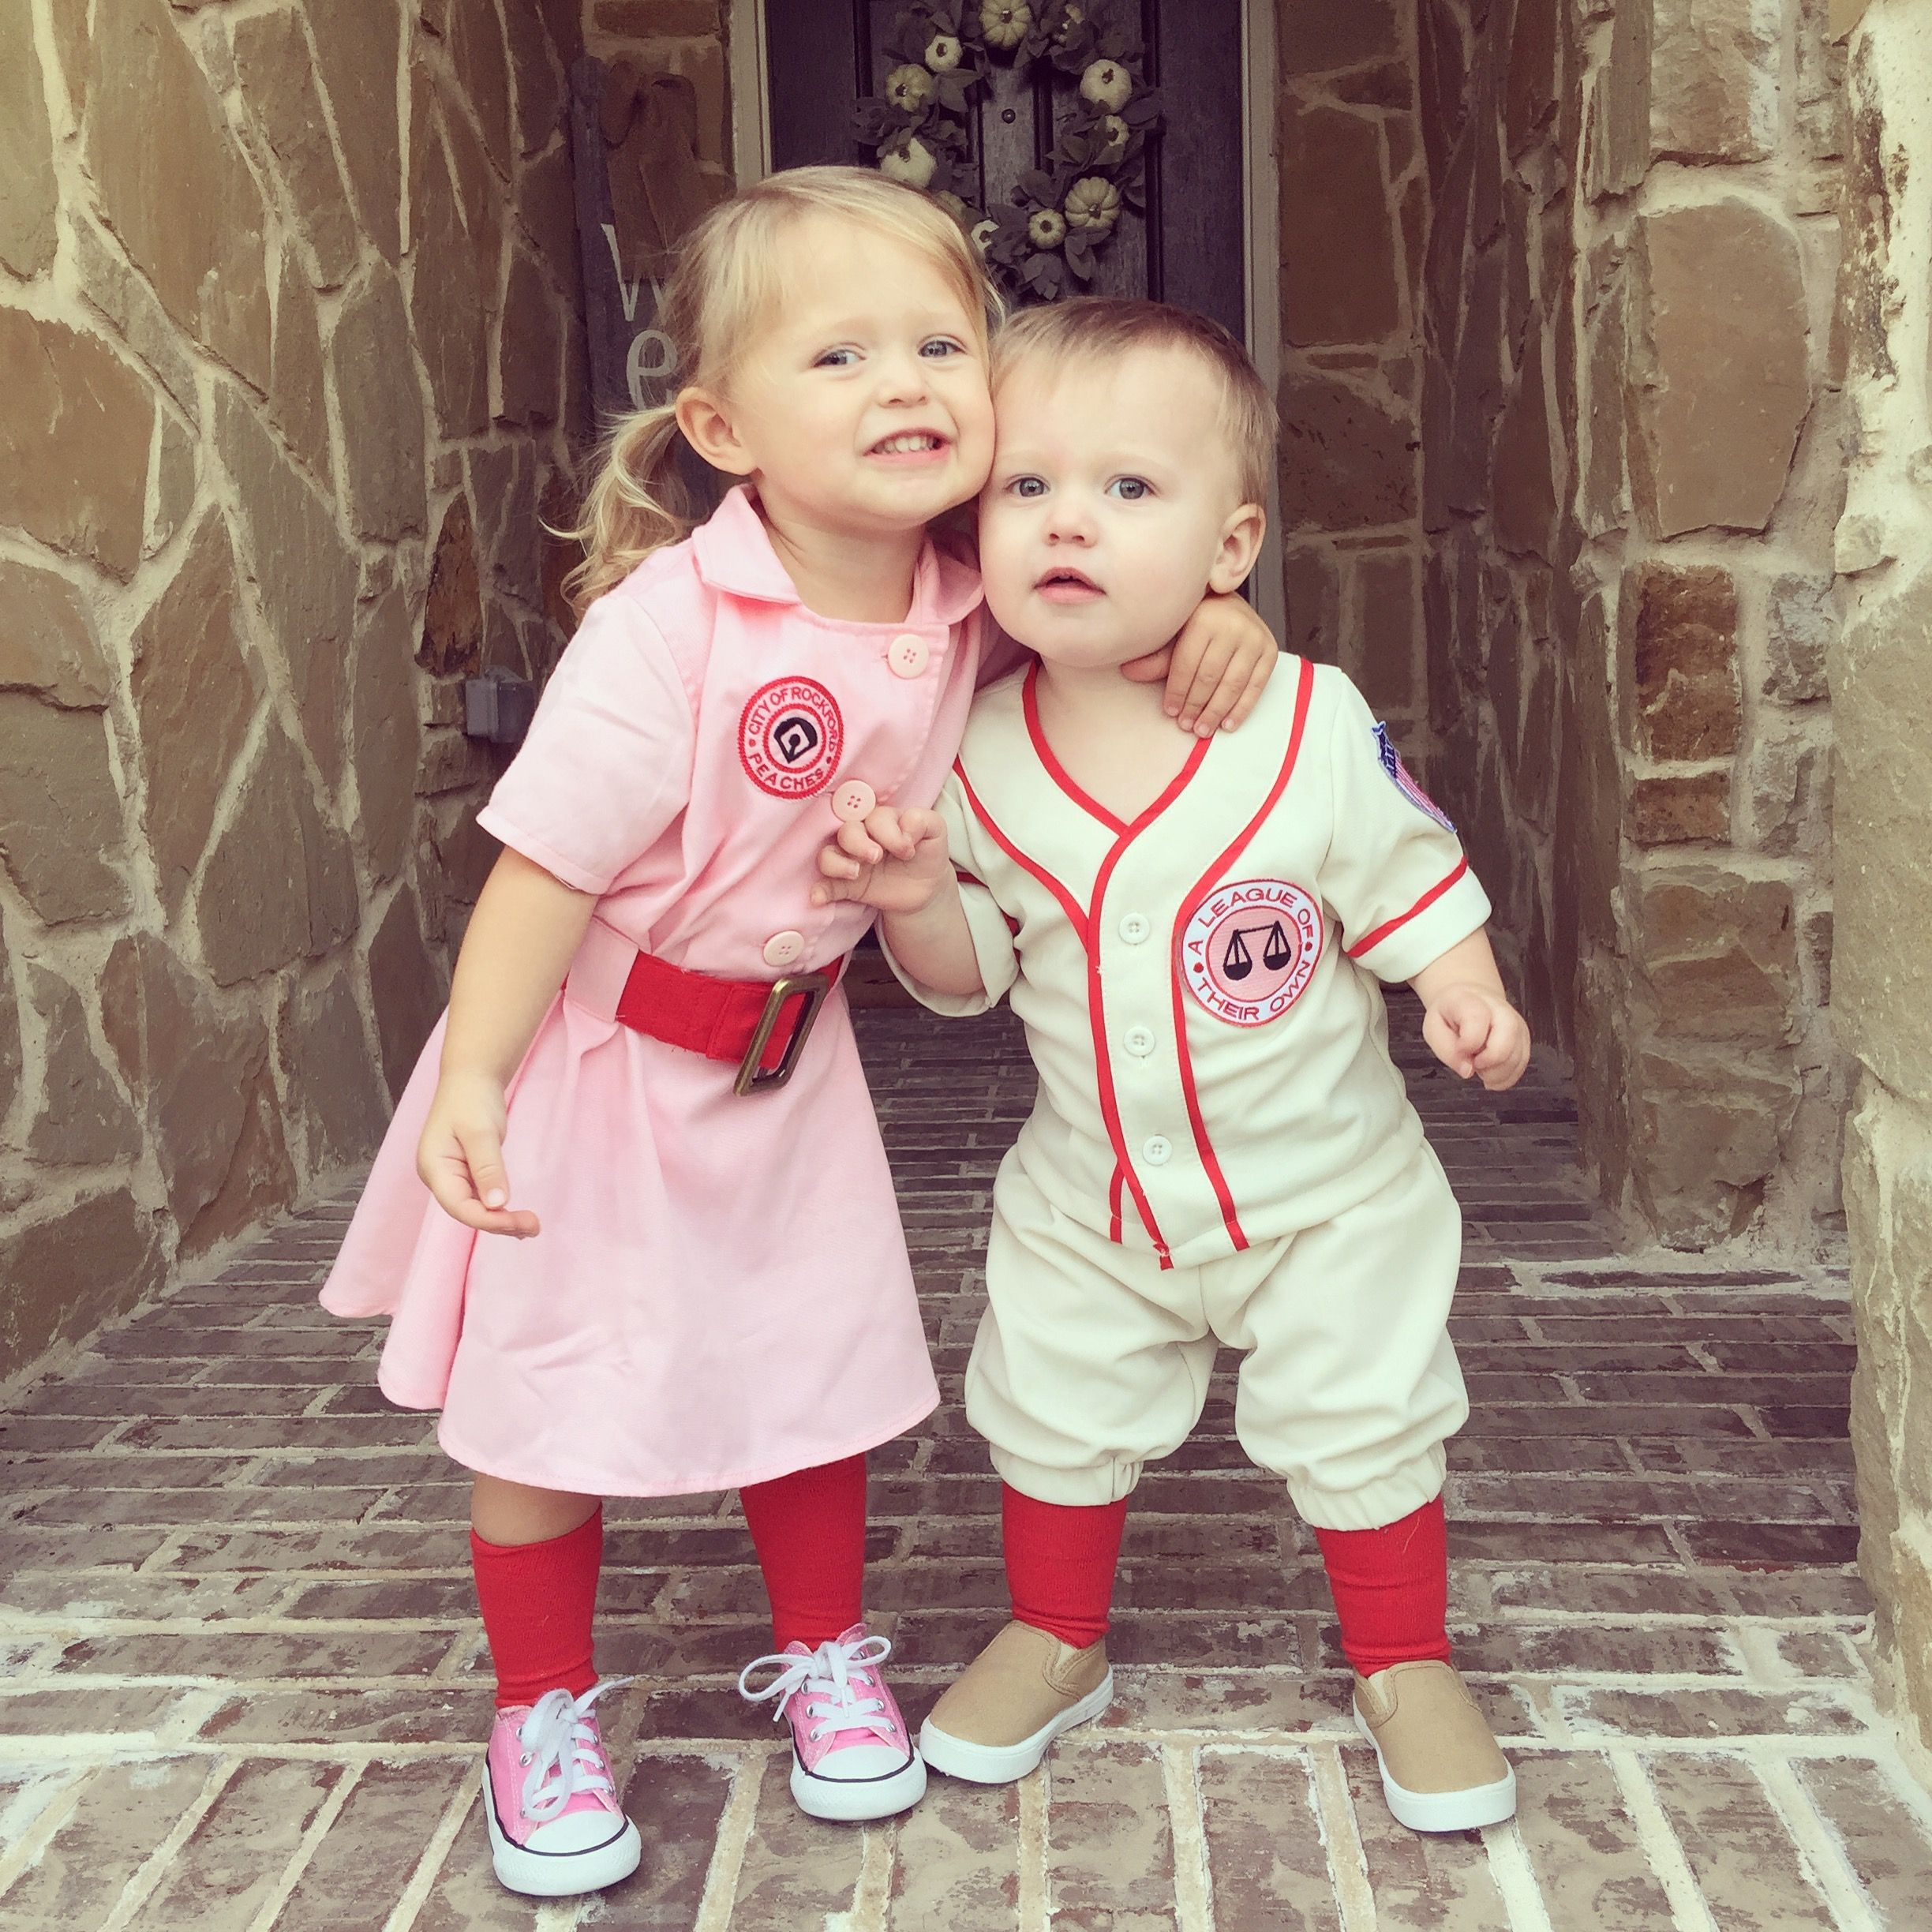 Sister Halloween Costumes 2020 Sibling Halloween Costume   A League of Their Own | Sister